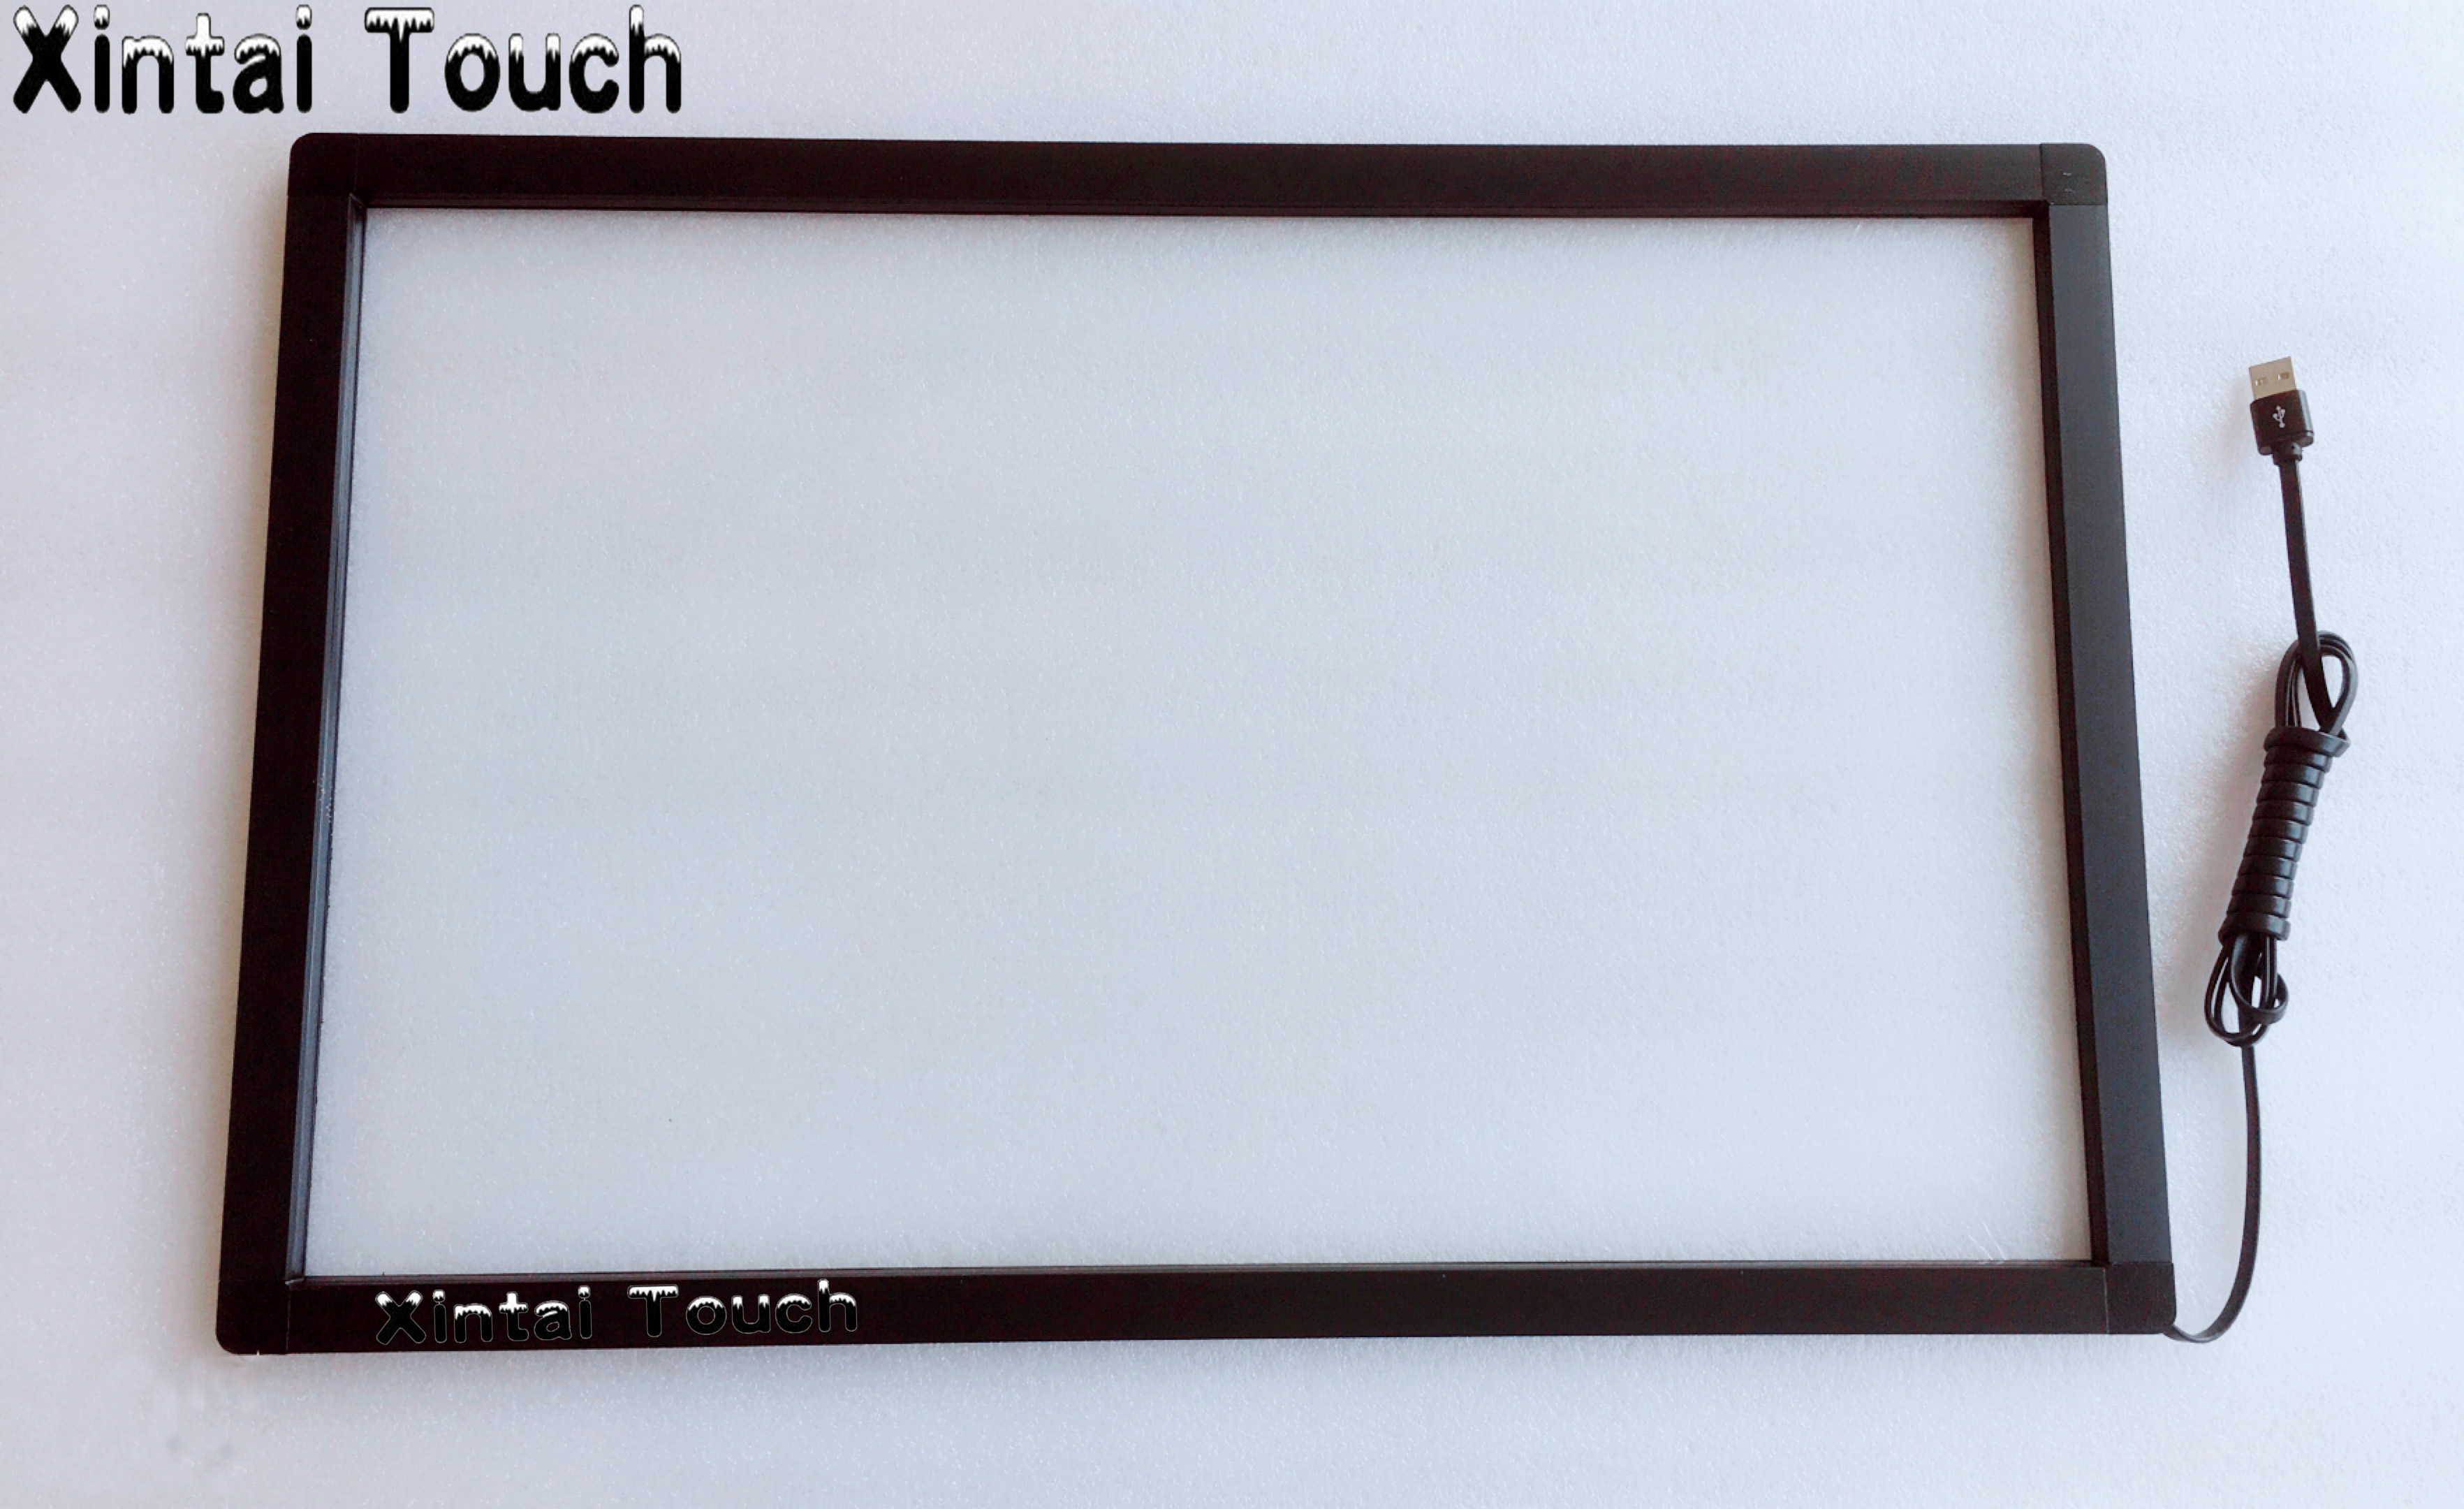 Xintai Touch 17 inch USB IR touch screen / panel, 2 points IR touch frame, IR touch overlay kit for LED monitor